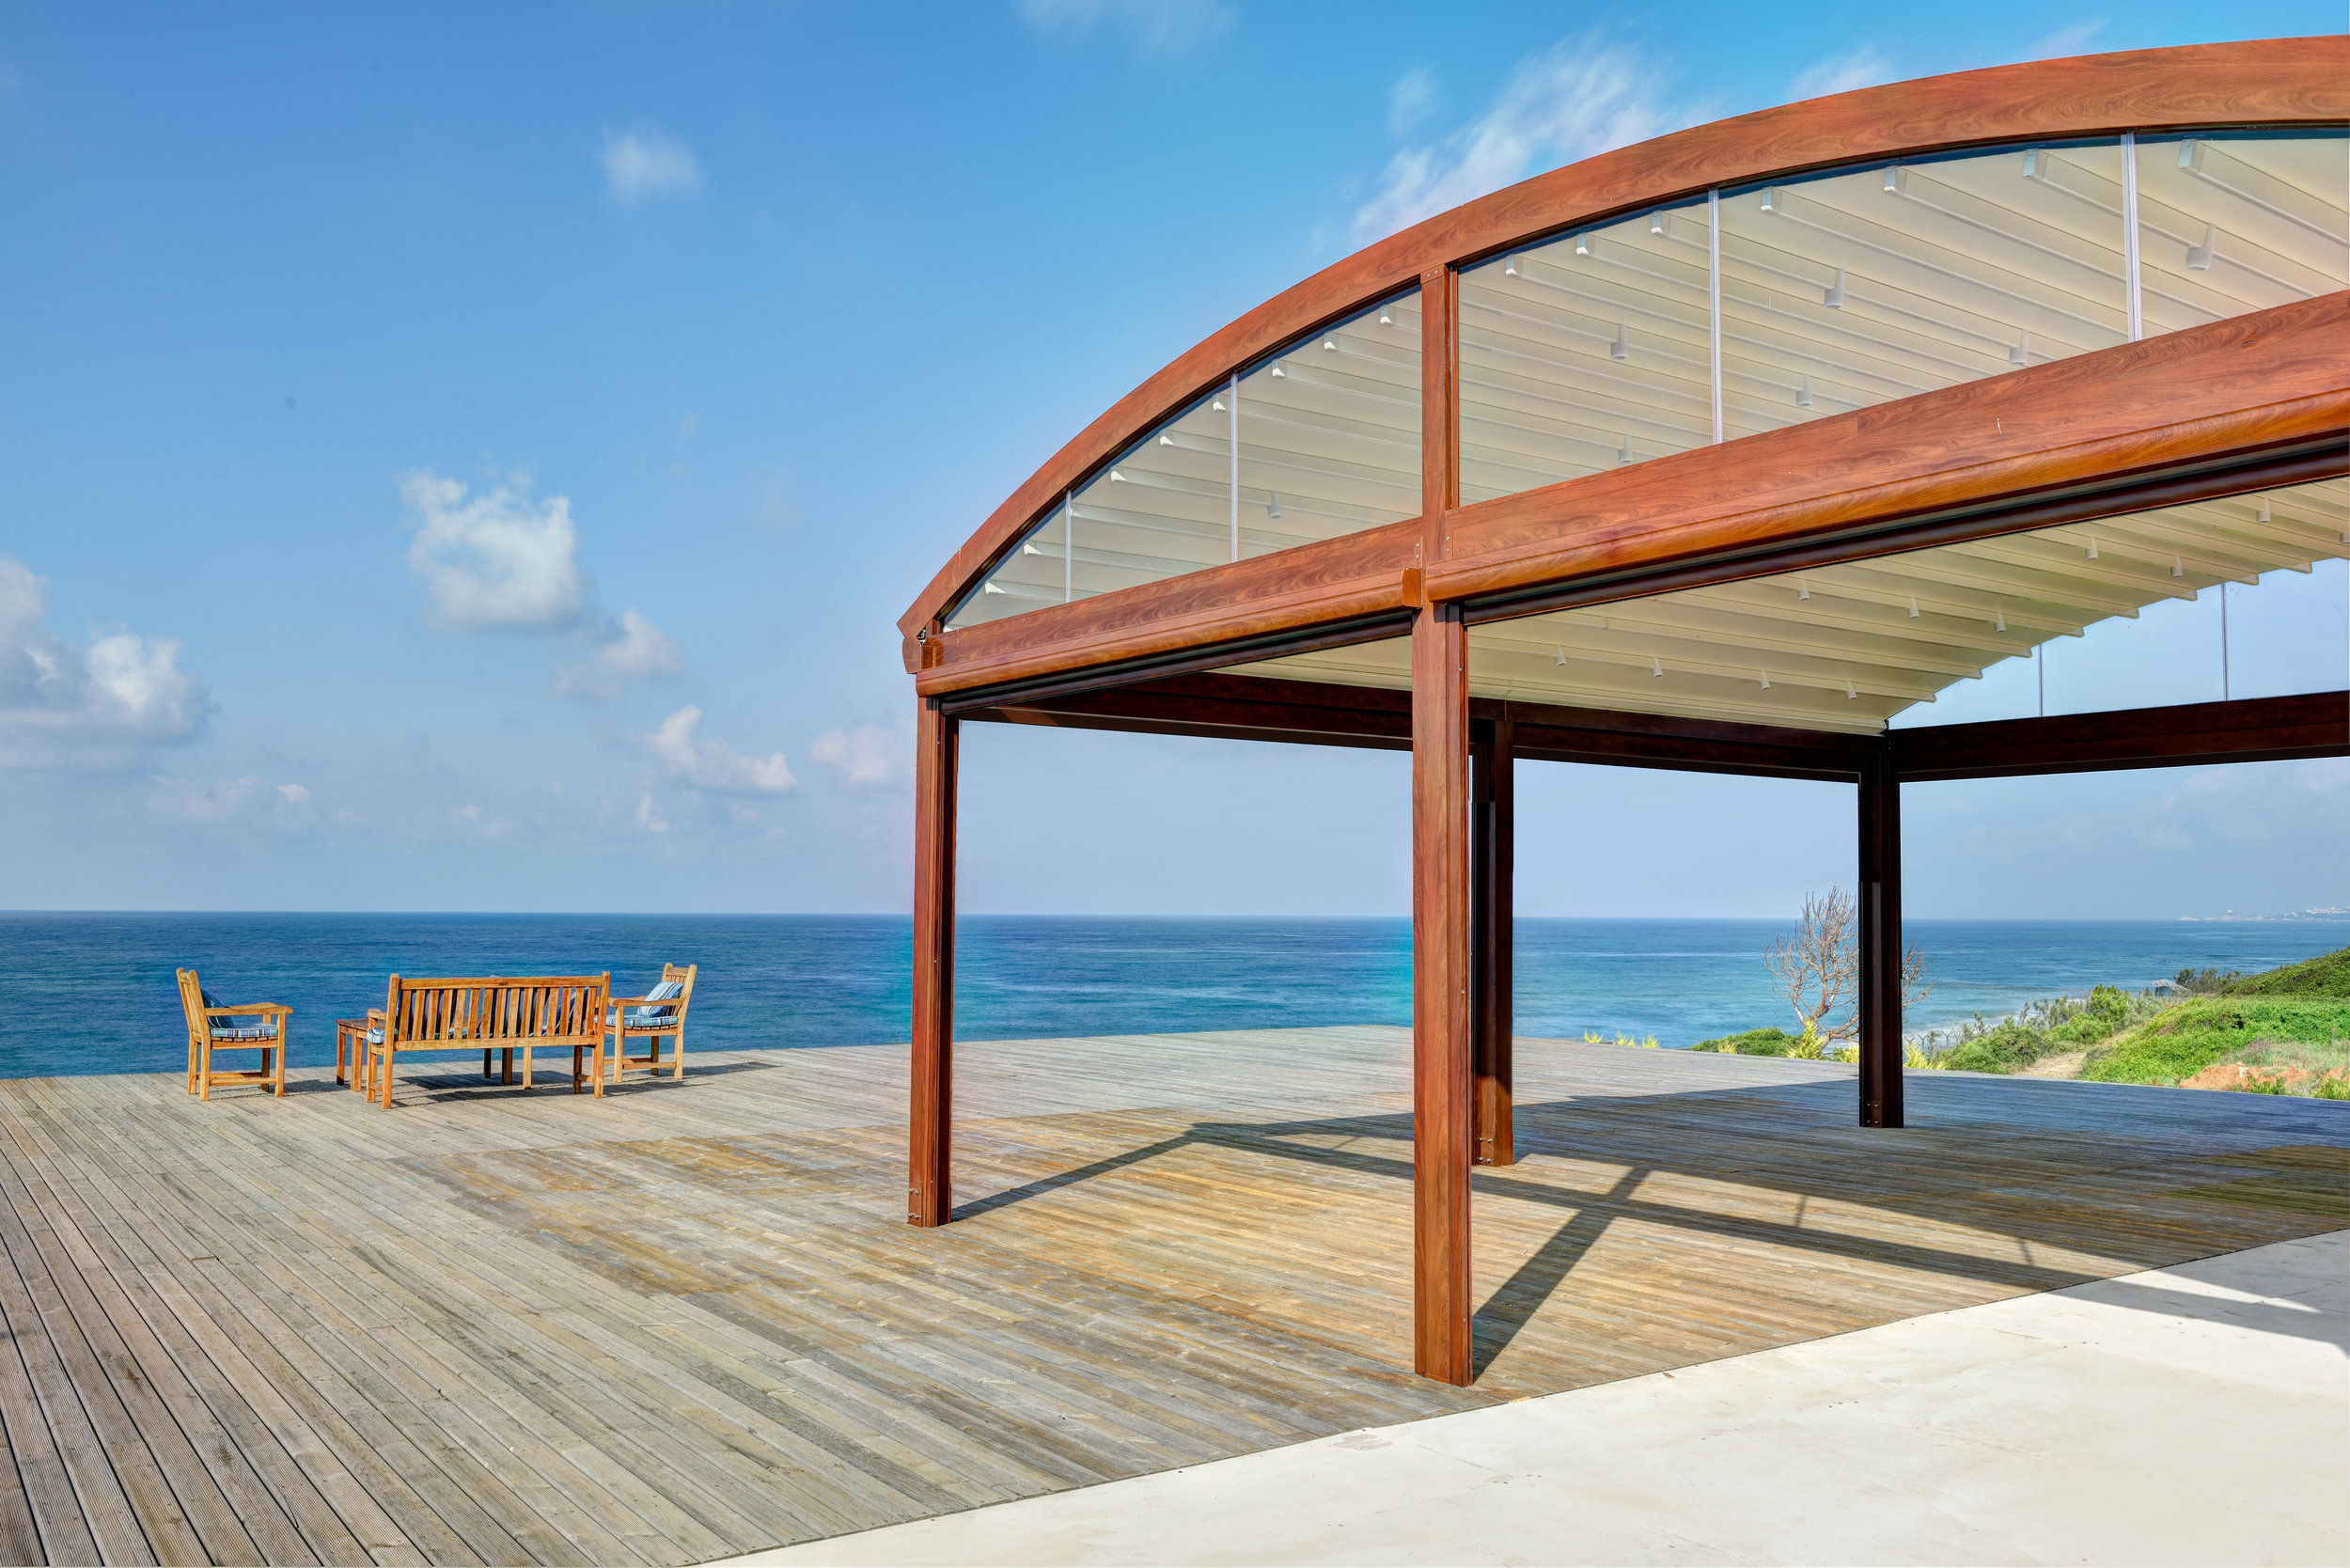 pergola_roof_arch_shades-blinds.jpg